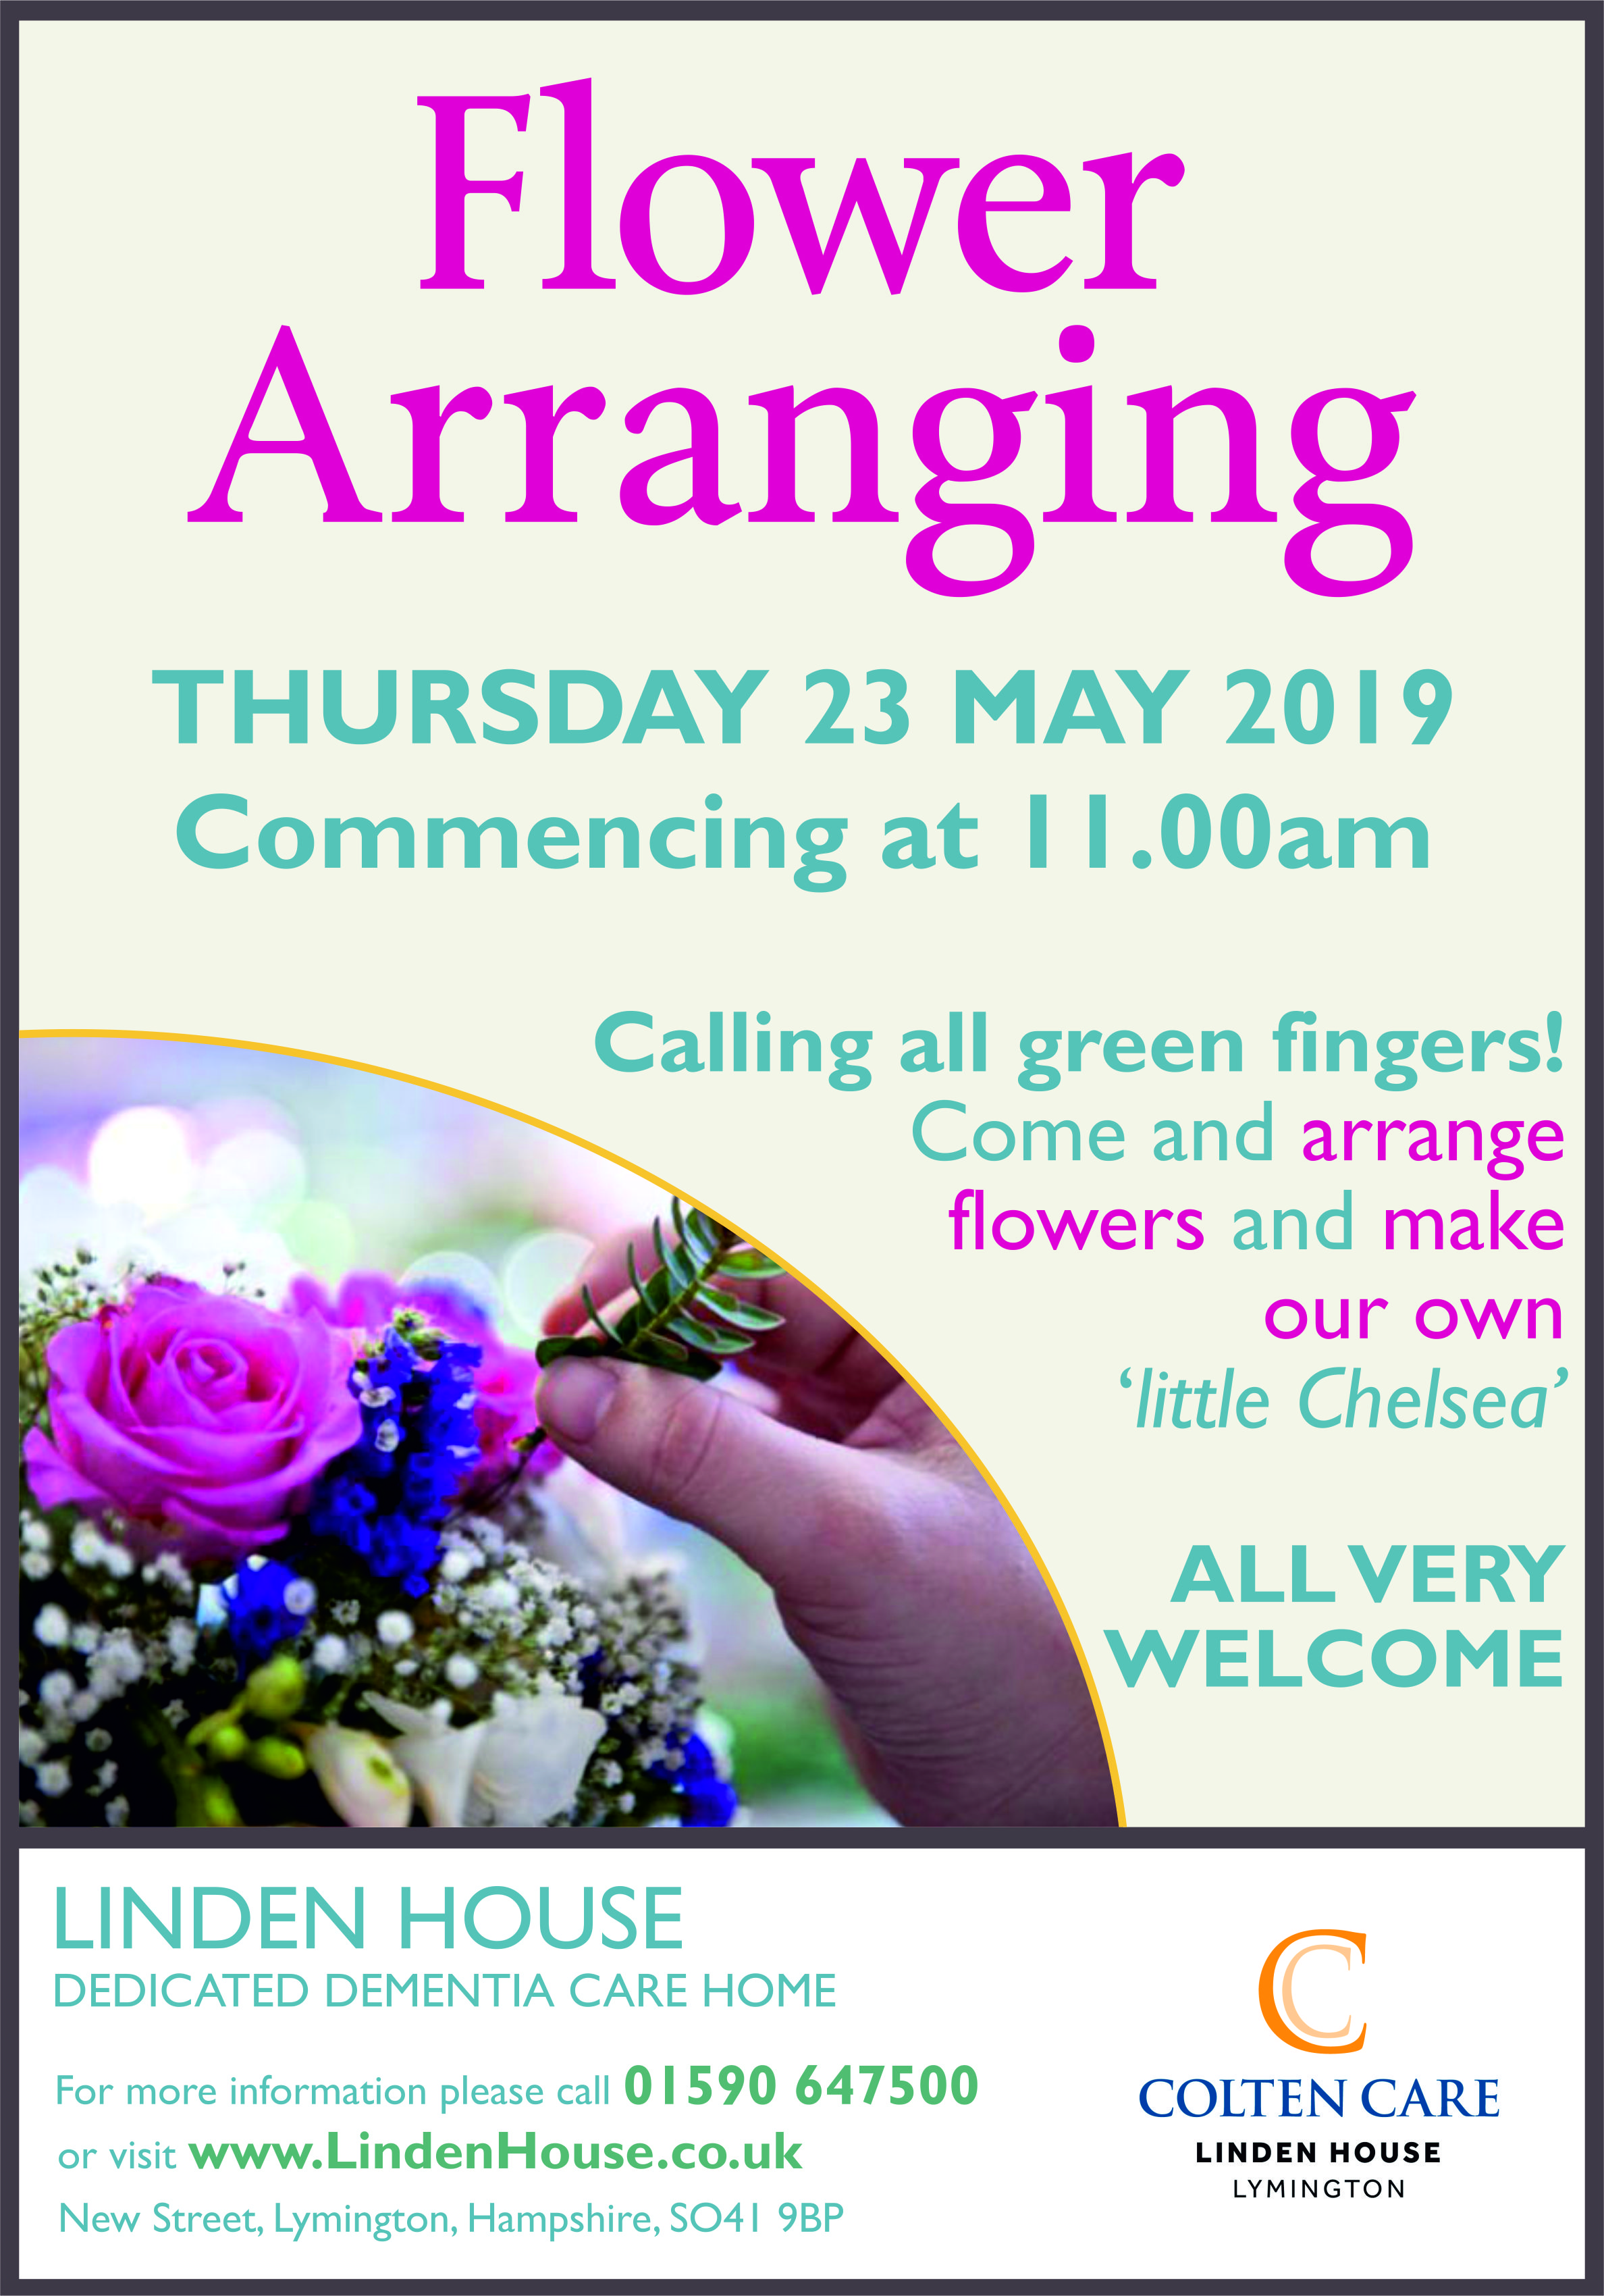 Linden House - Flower Arranging Poster 23 May - 15 Apr 2019